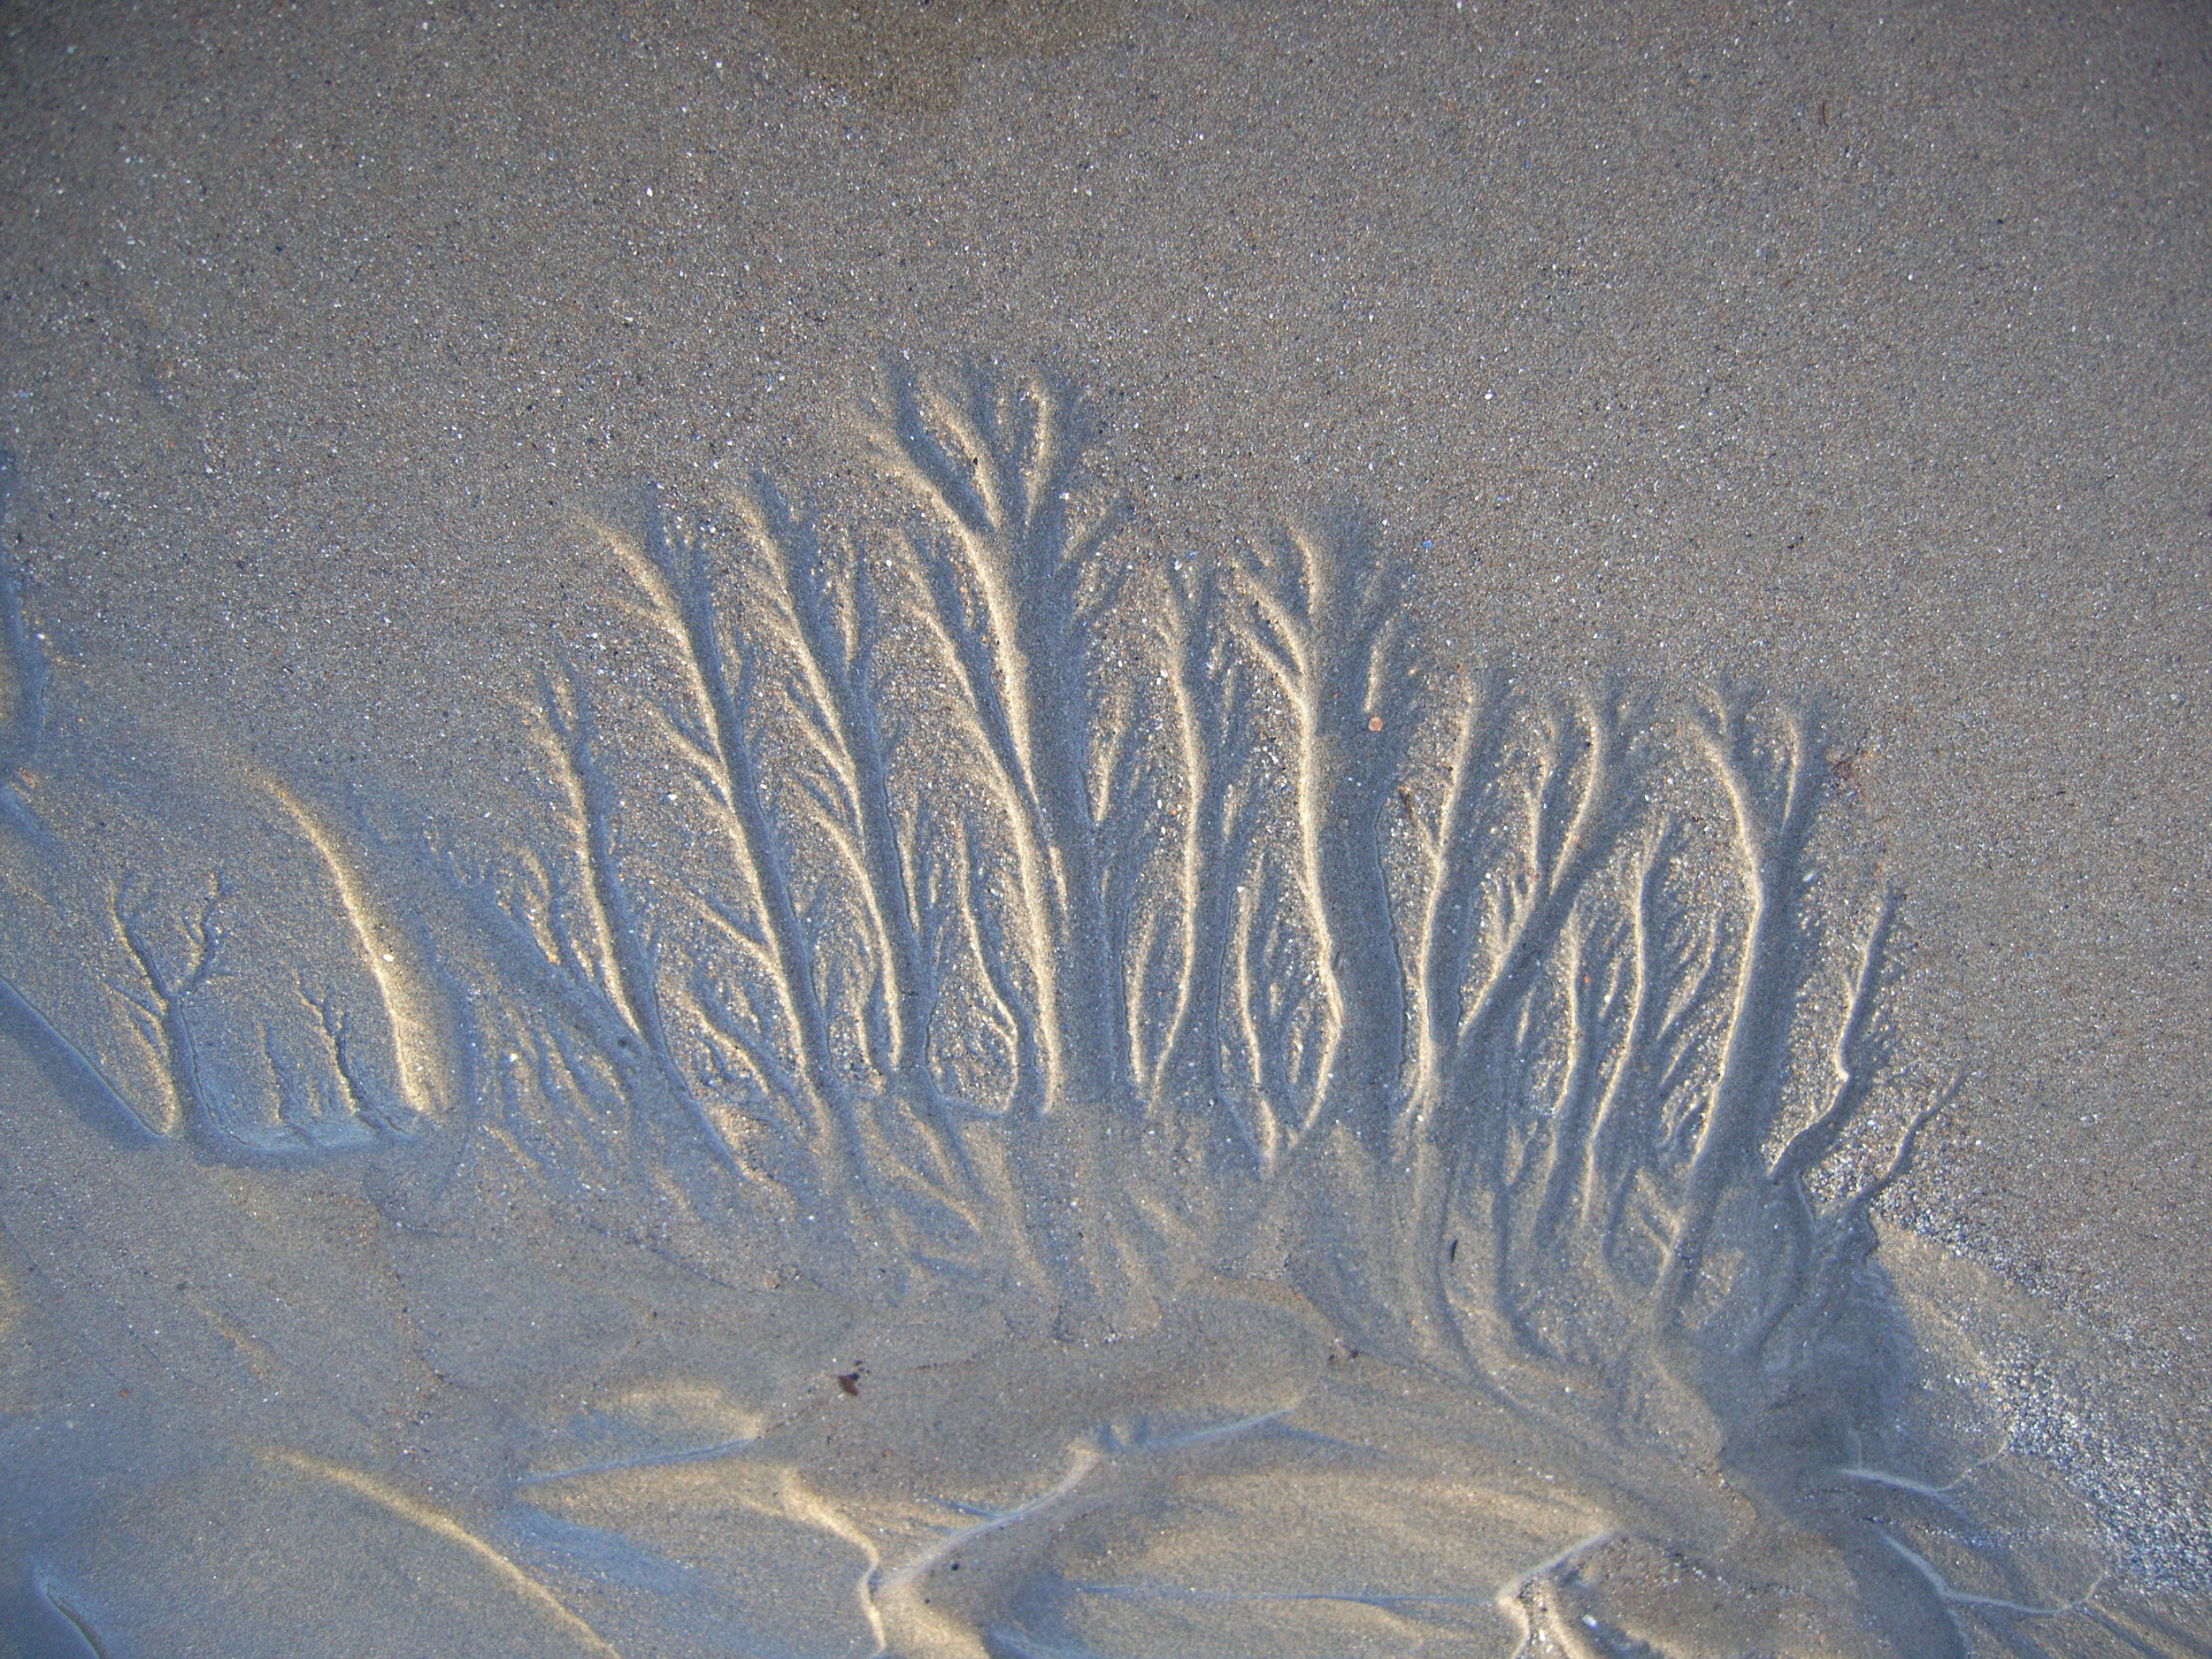 A delicate fractal pattern made by the waves at Seal Harbor beach.